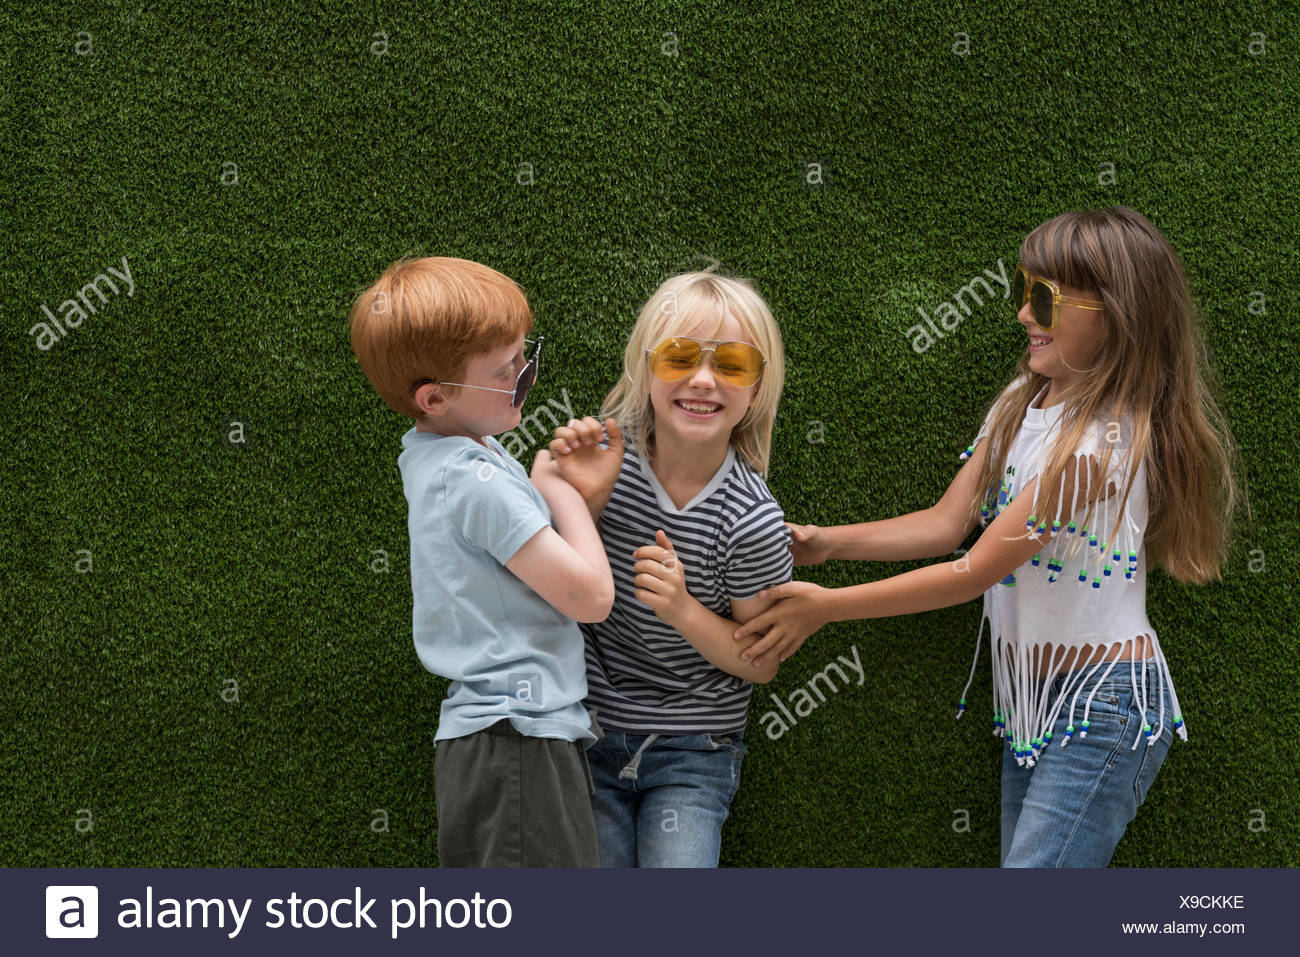 Children in front of artificial turf wall playing tickle stock image